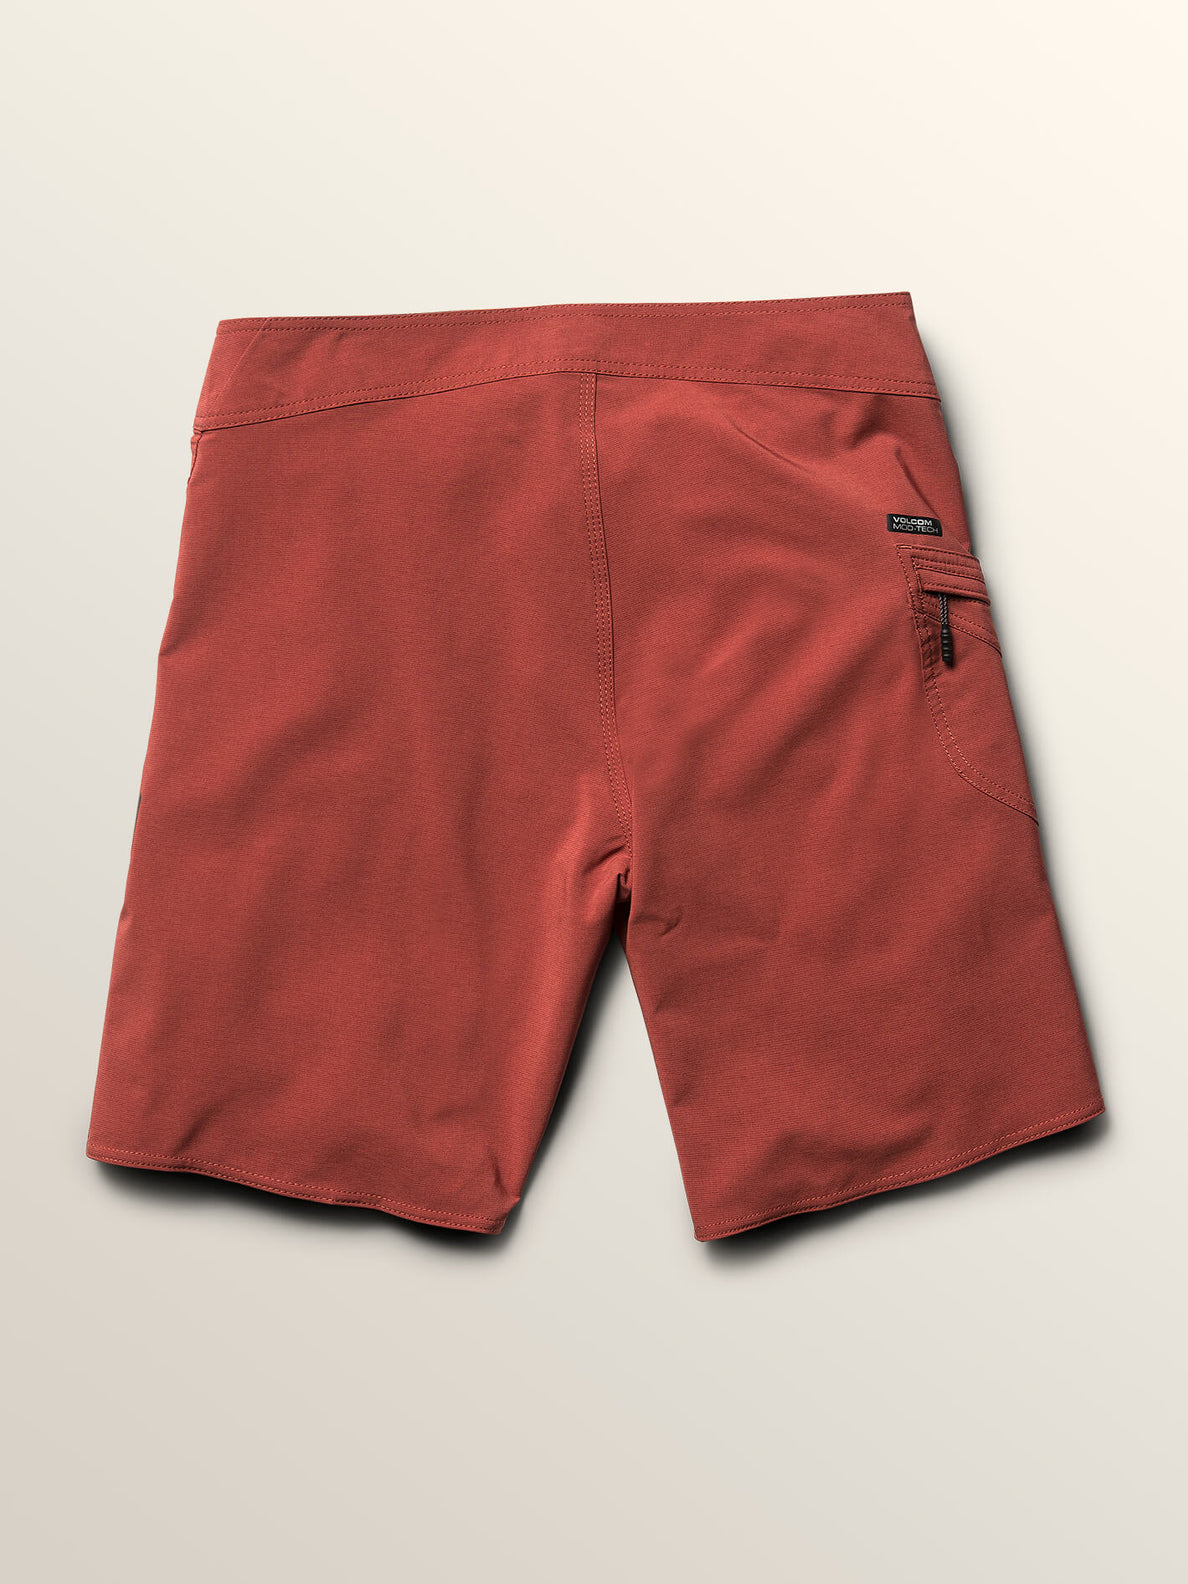 Lido Solid Mod Boardshorts In Rust, Fourth Alternate View